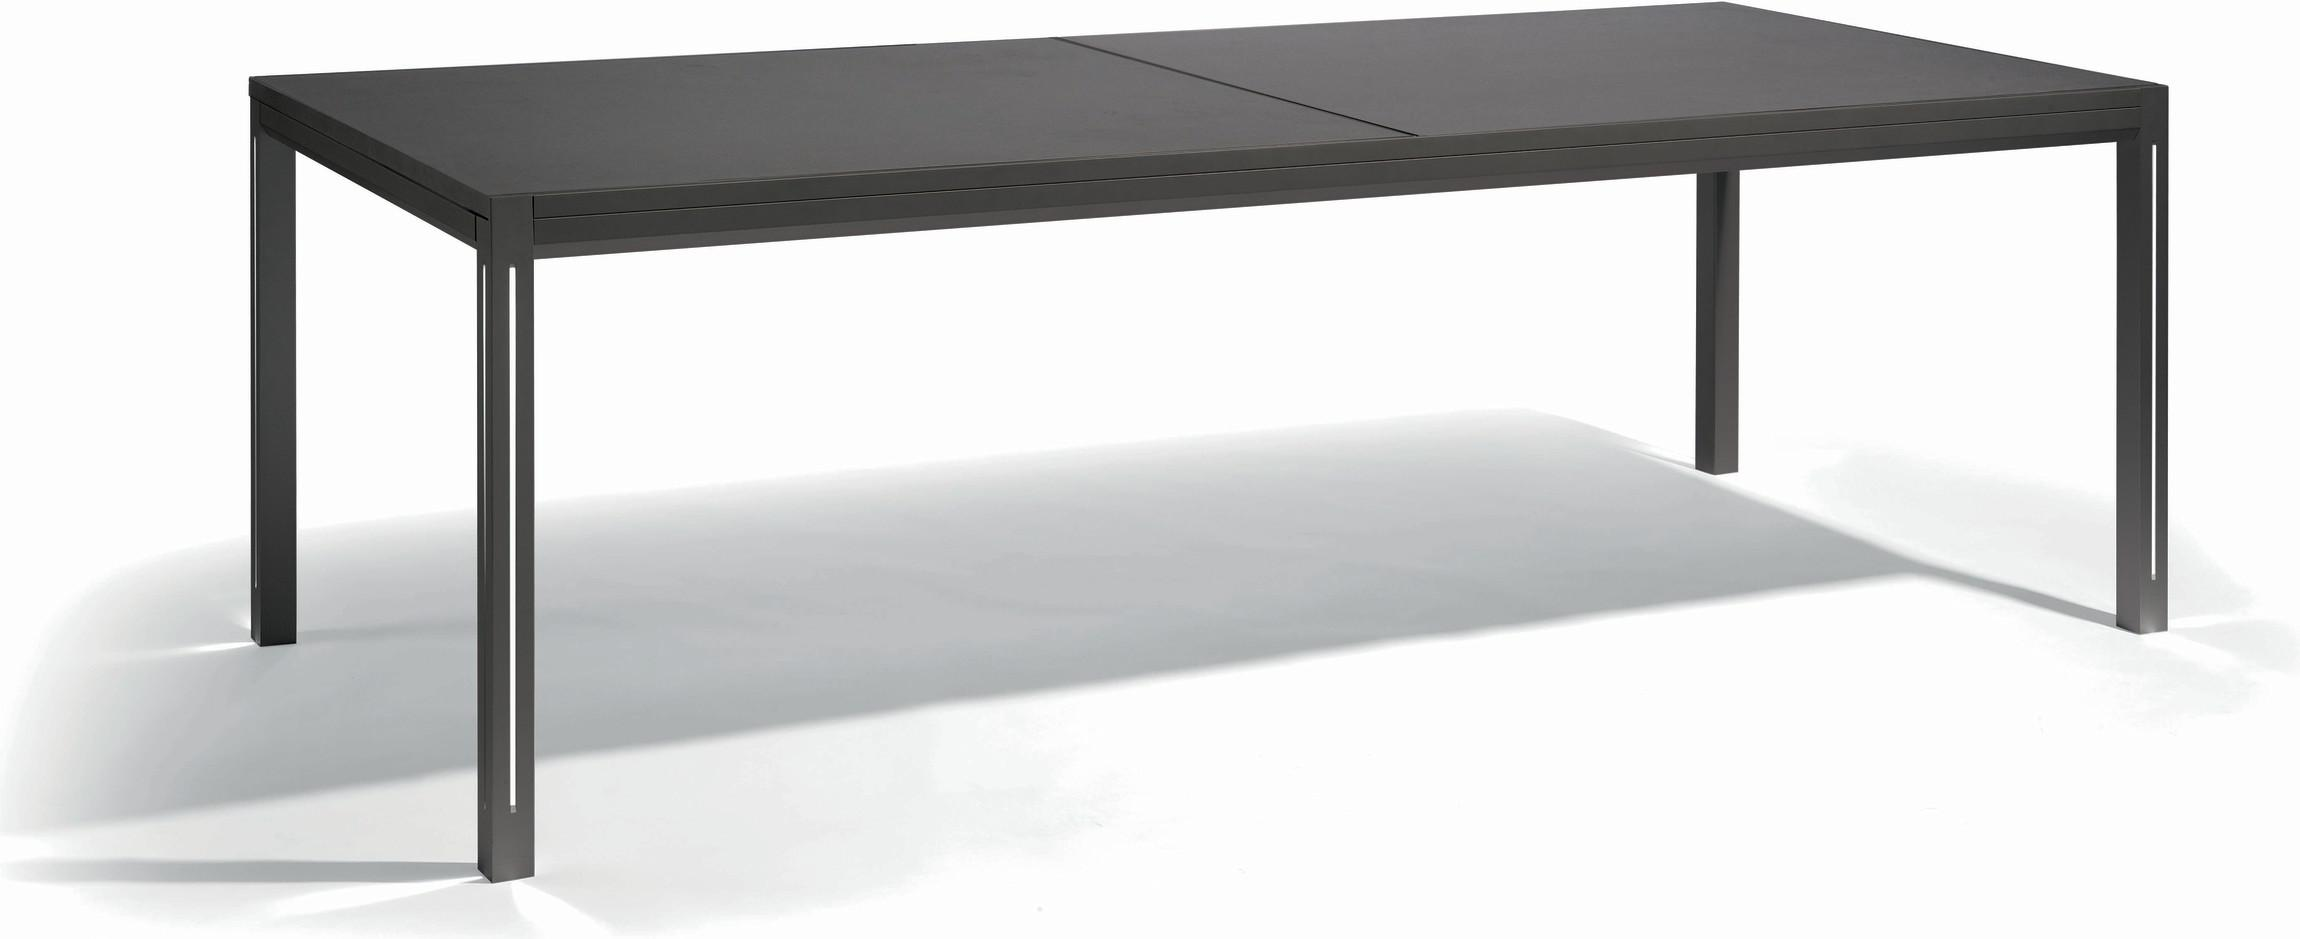 Table à manger Luna - lave - GLB 360 - LED